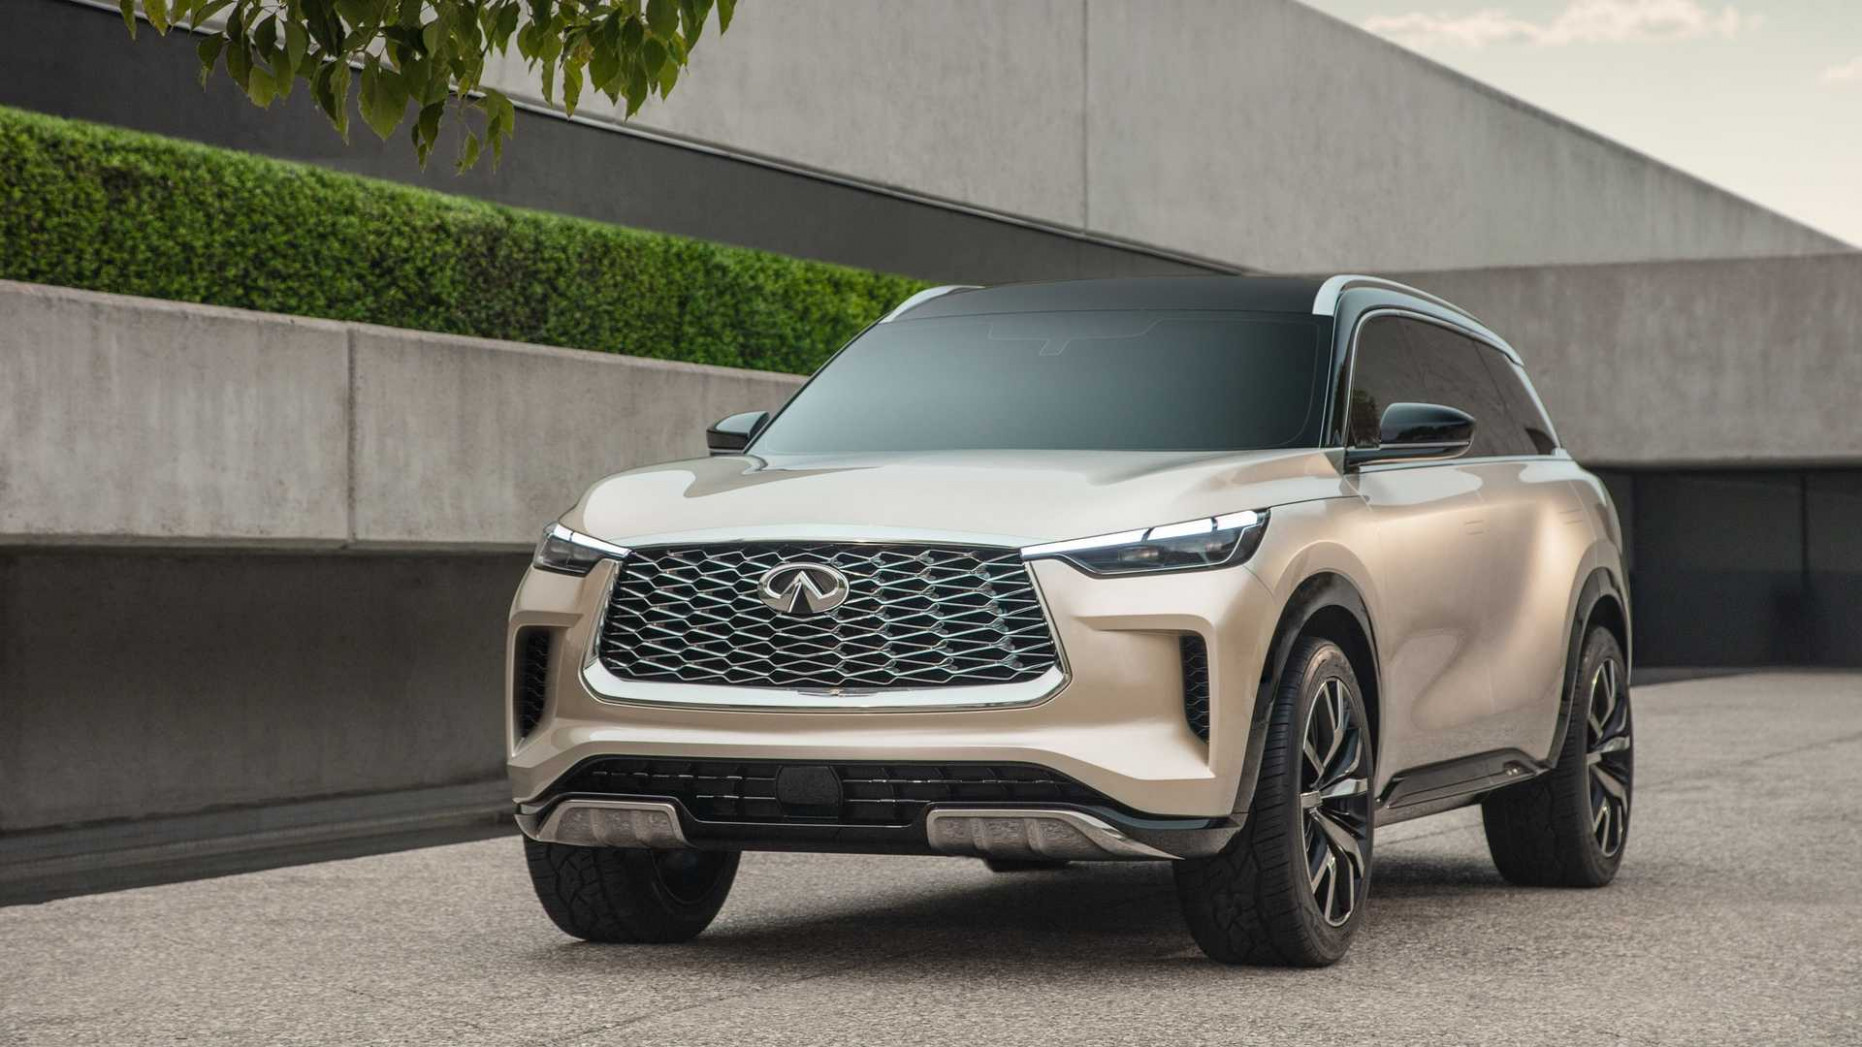 Price and Release date 2022 Infiniti QX80